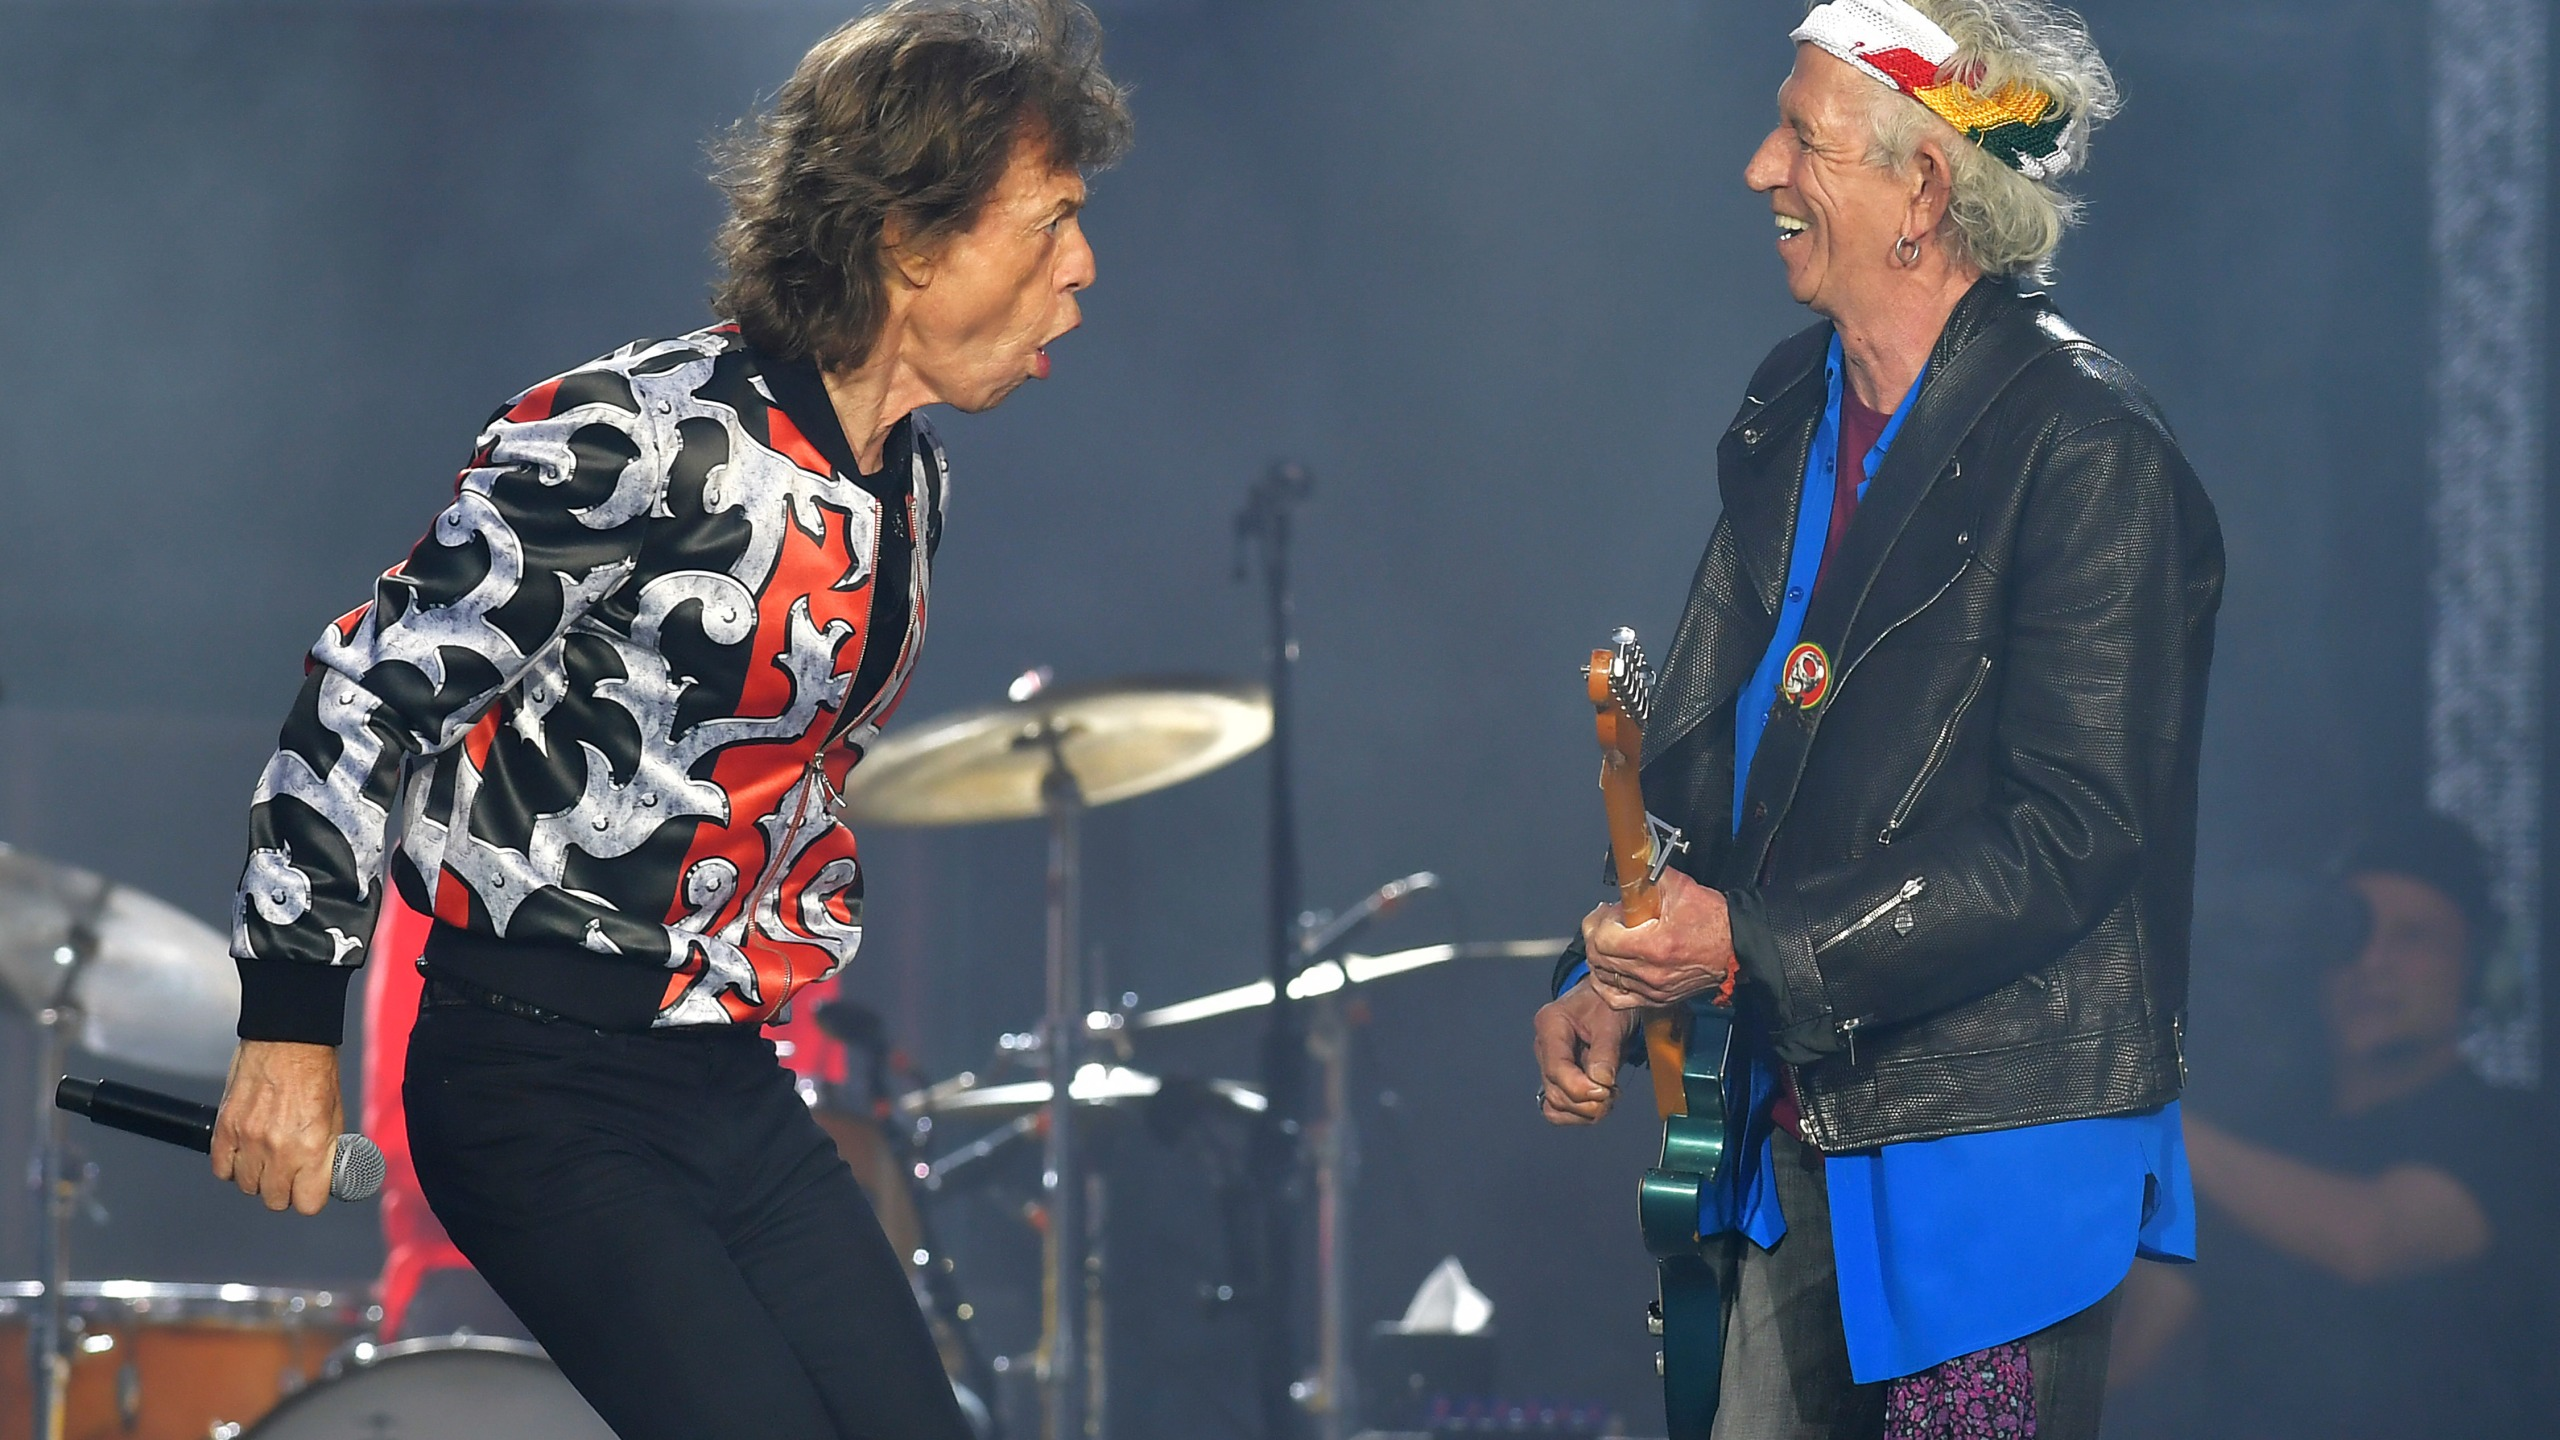 Music-The_Rolling_Stones_61116-159532.jpg67584842